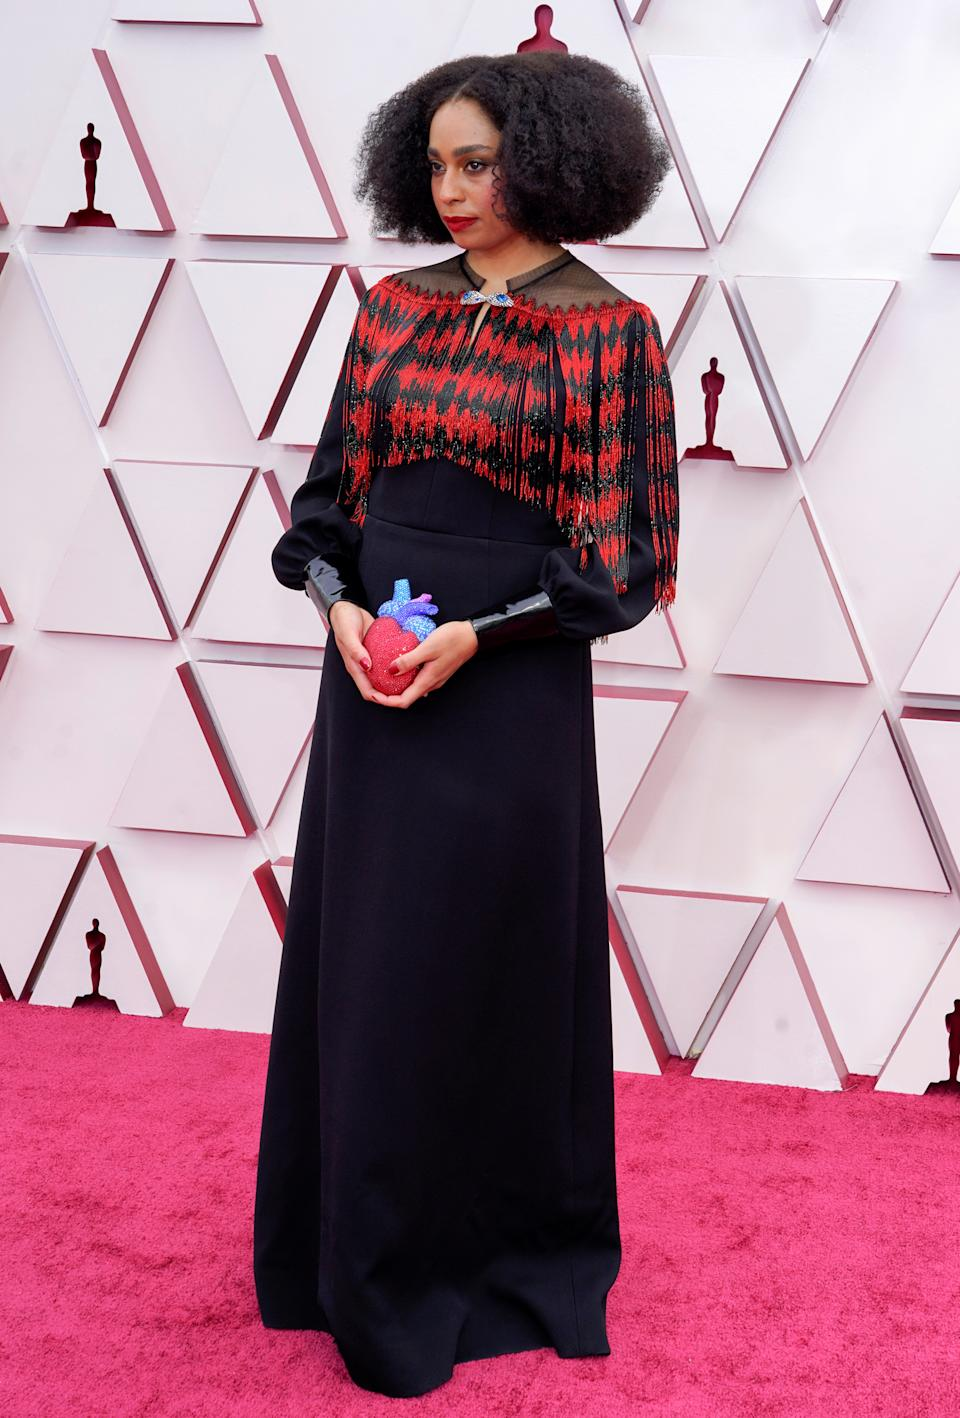 Celeste Waite arrives to the 93rd Academy Awards, at Union Station, in Los Angeles, U.S., April 25, 2021. Chris Pizzello/Pool via REUTERS